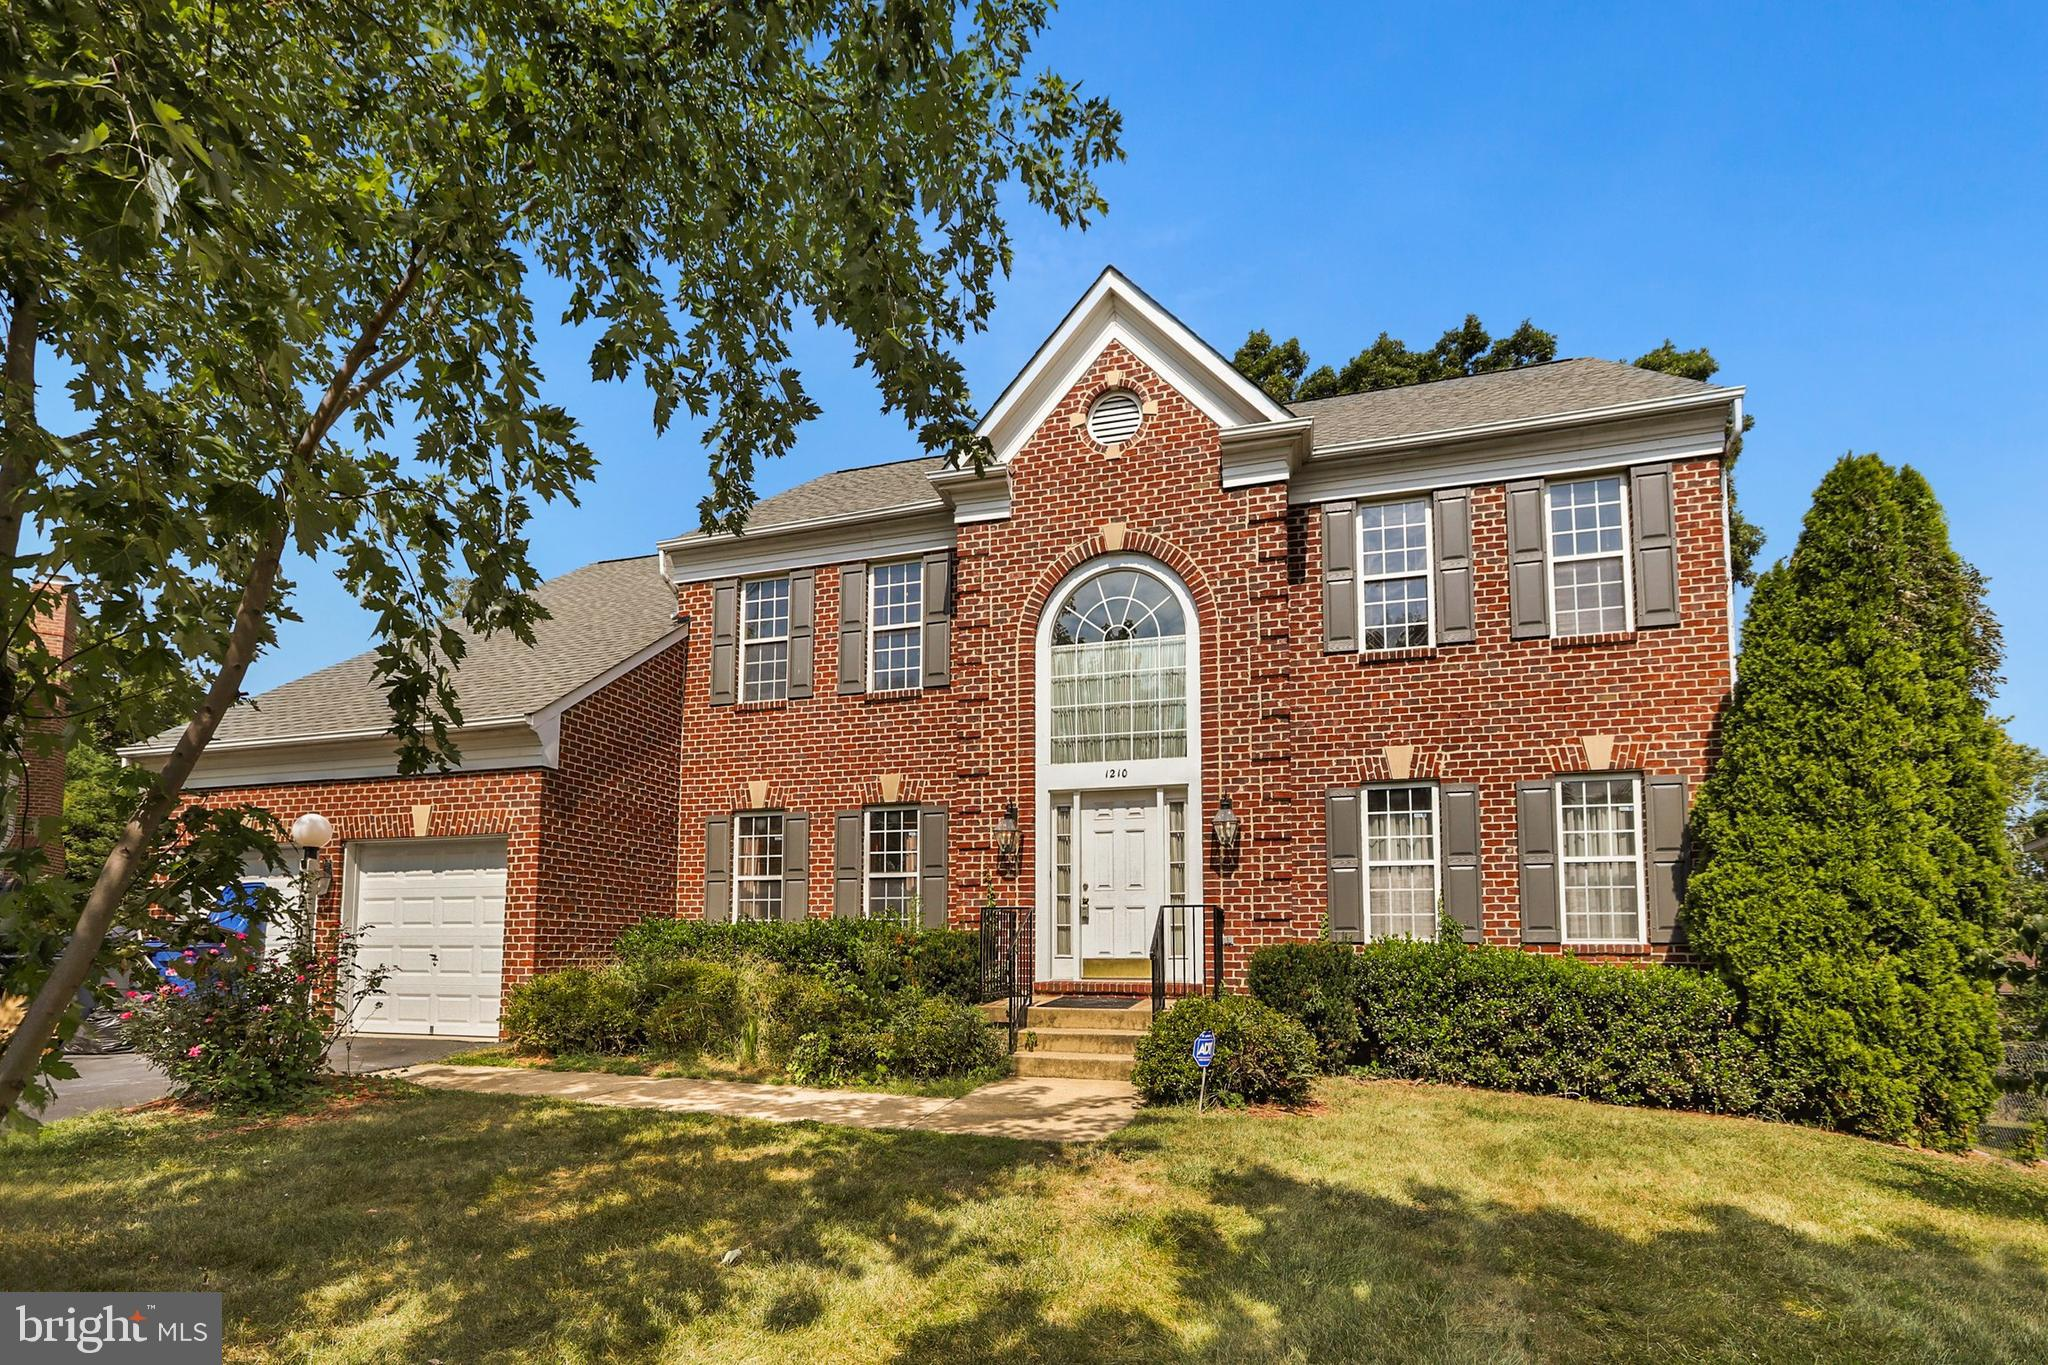 This lovely brick front estate home is located on the back of a private cul-de-sac with only 8 homes